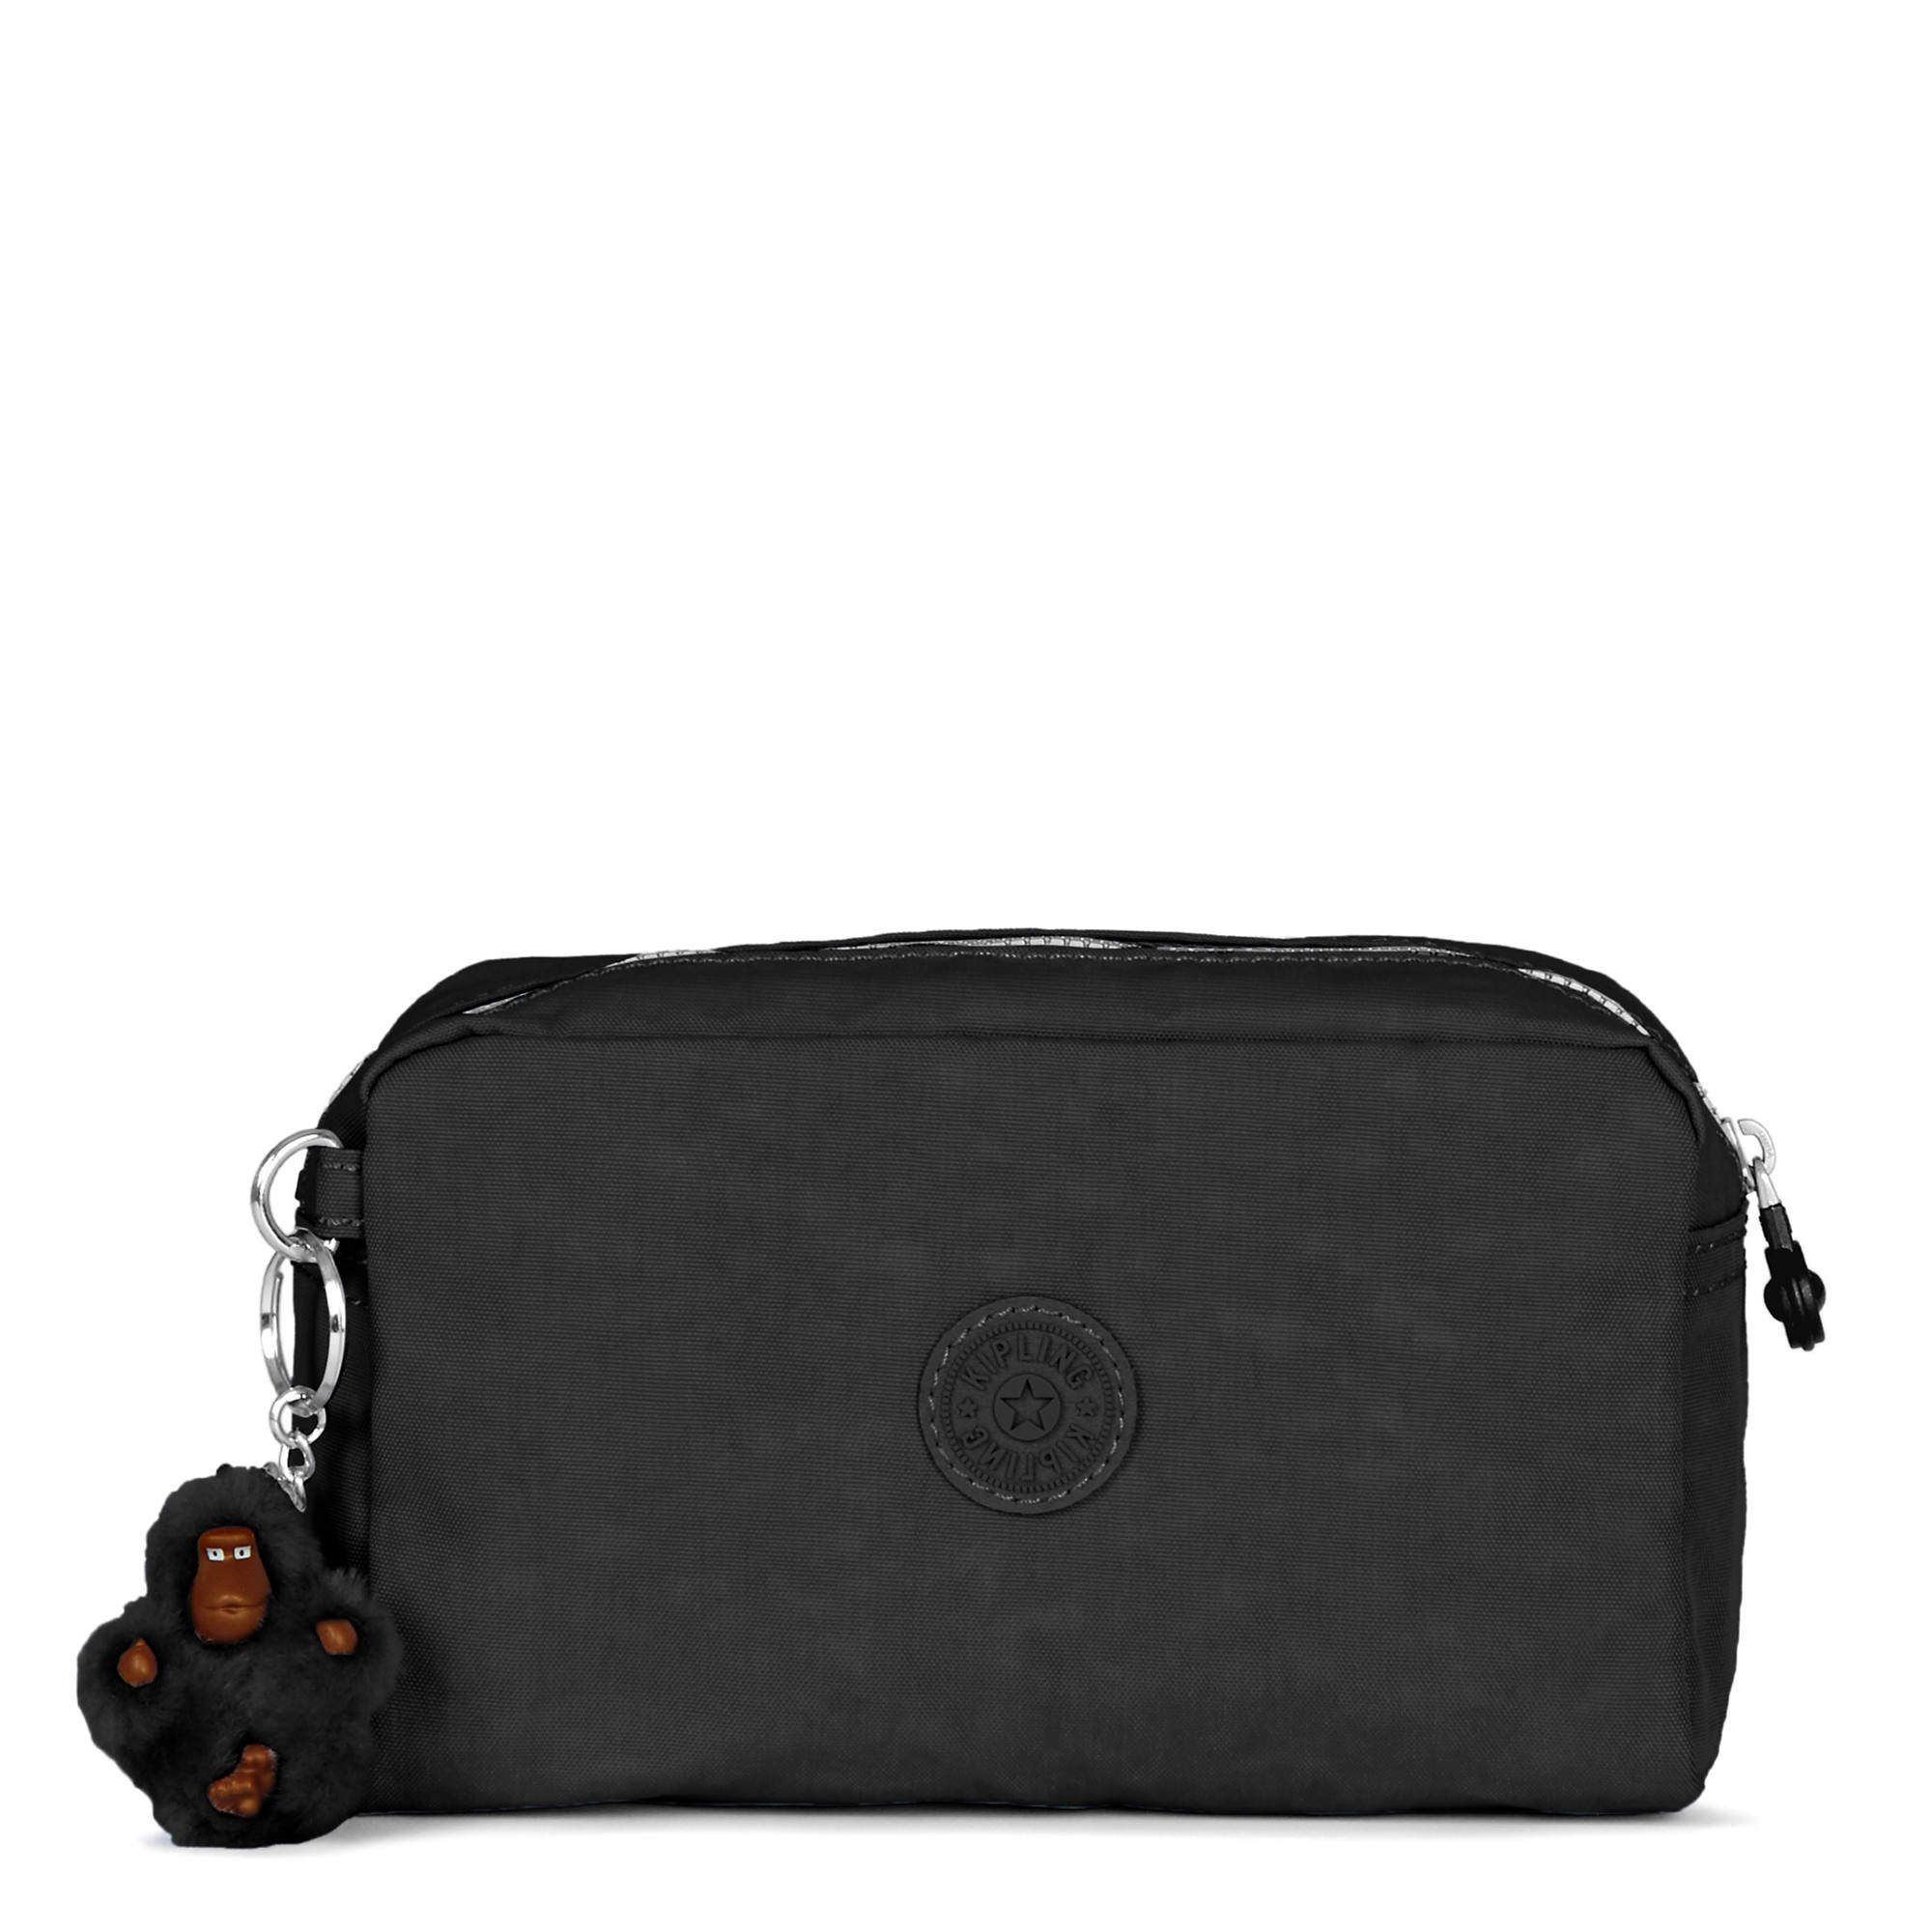 Kipling Gleam Cosmetic Bag, Black